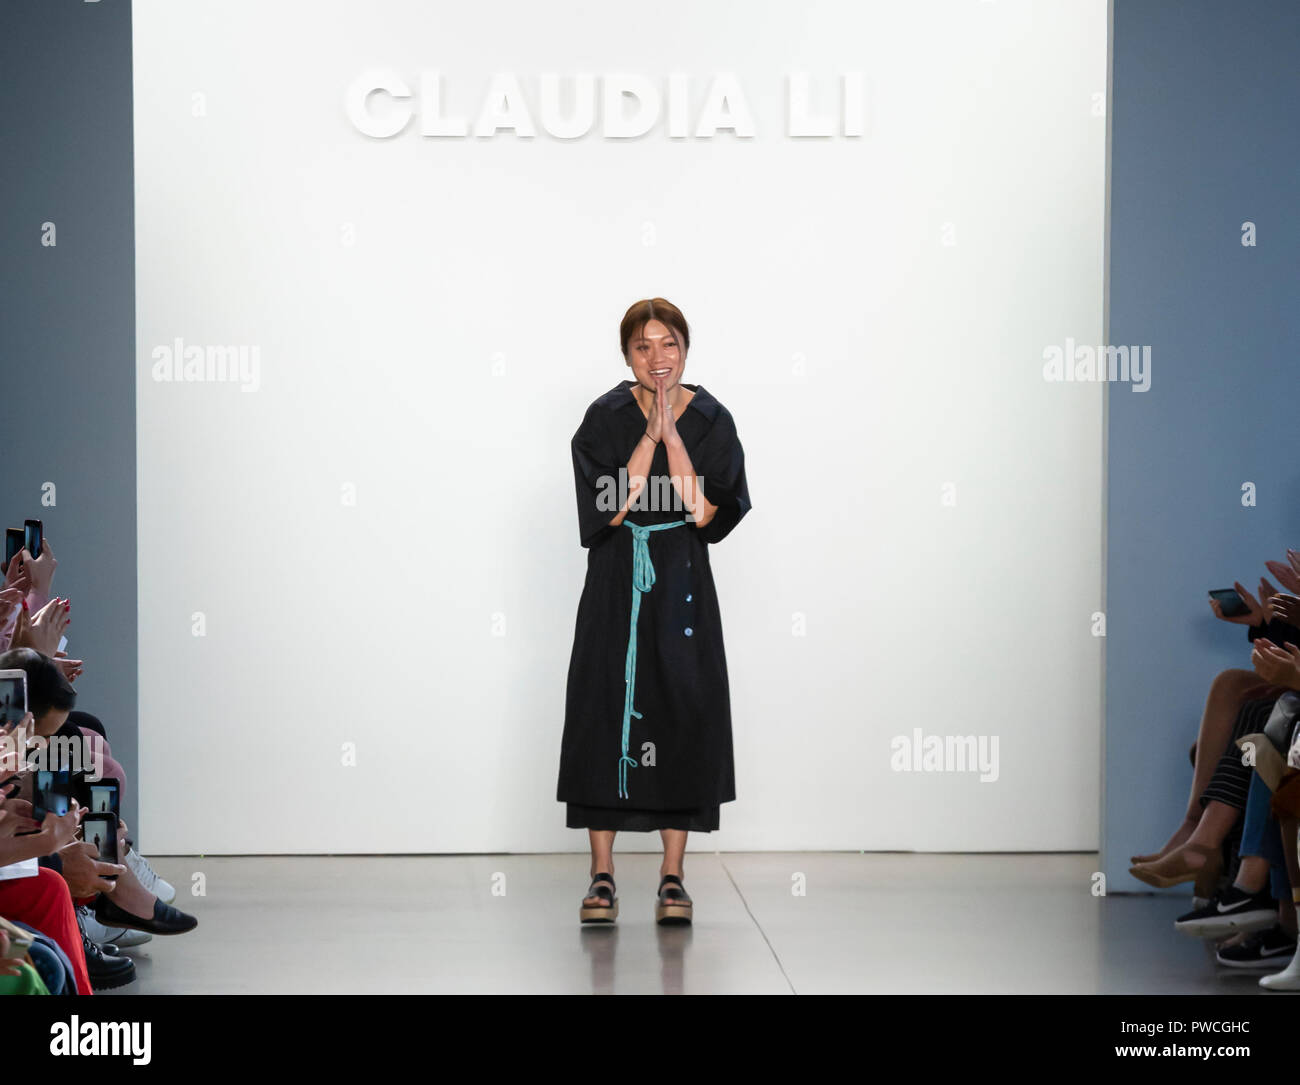 New York Ny September 09 2018 Designer Claudia Li Walks The Runway At The Claudia Li Spring Summer 2019 Fashion Show During New York Fashion Week Stock Photo Alamy